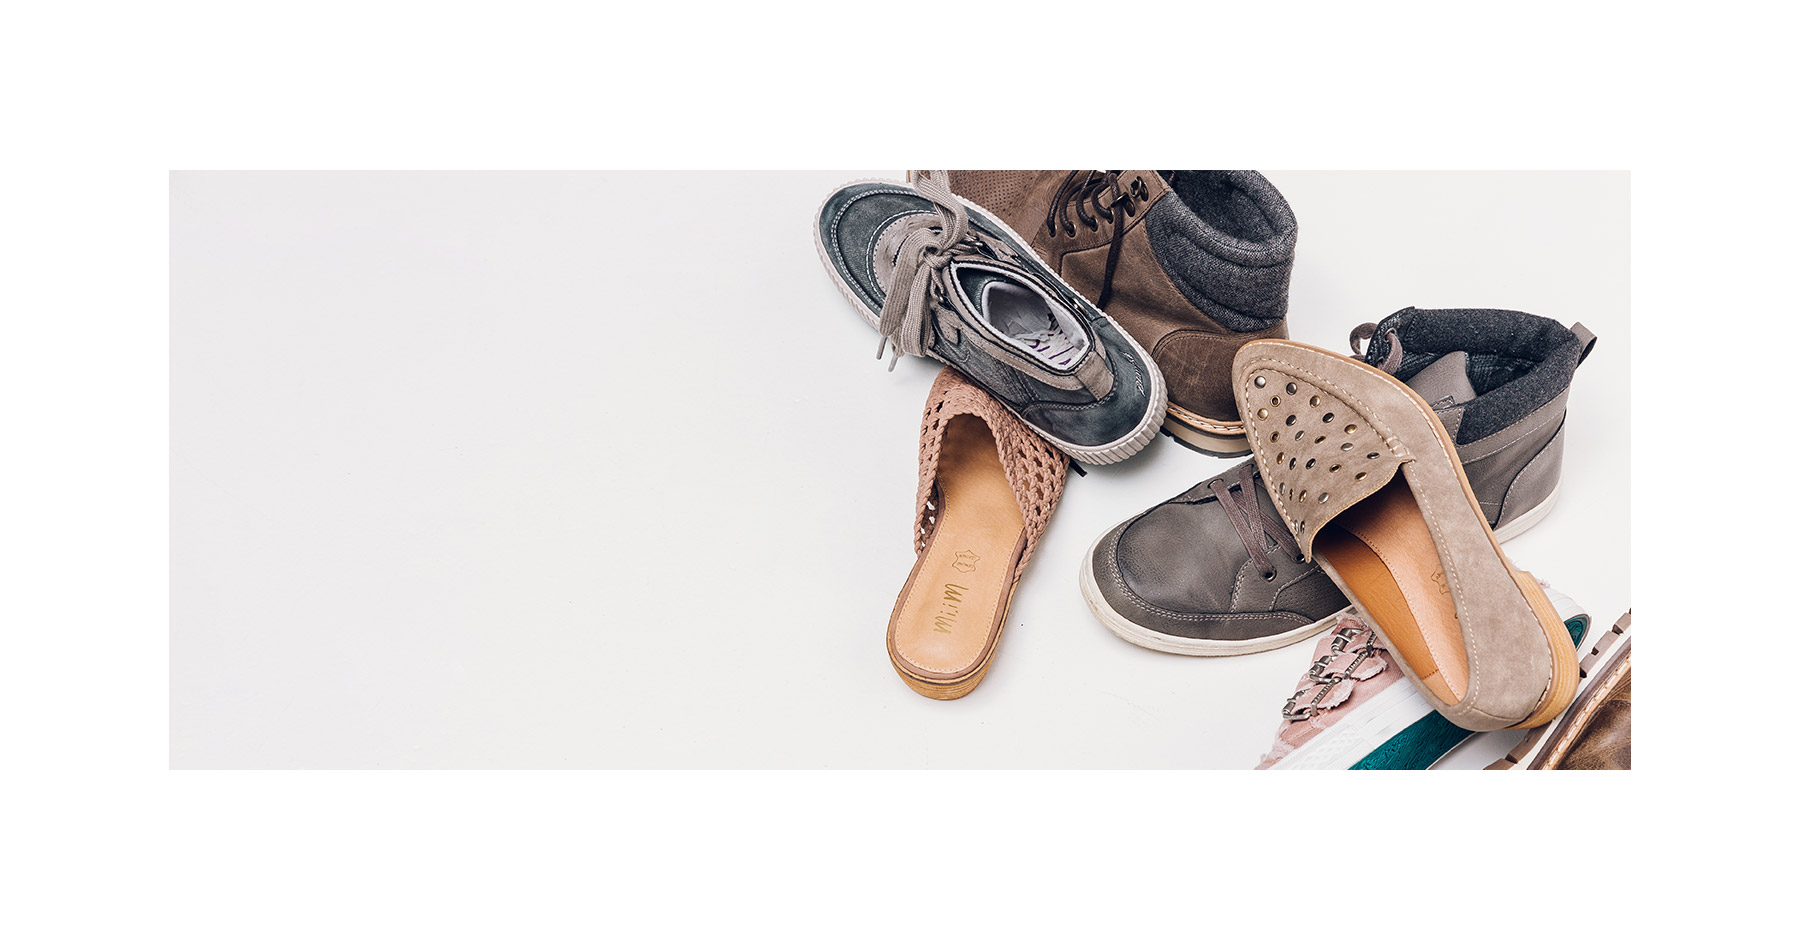 Assorted new styles of men's and women's shoes from Buckle.